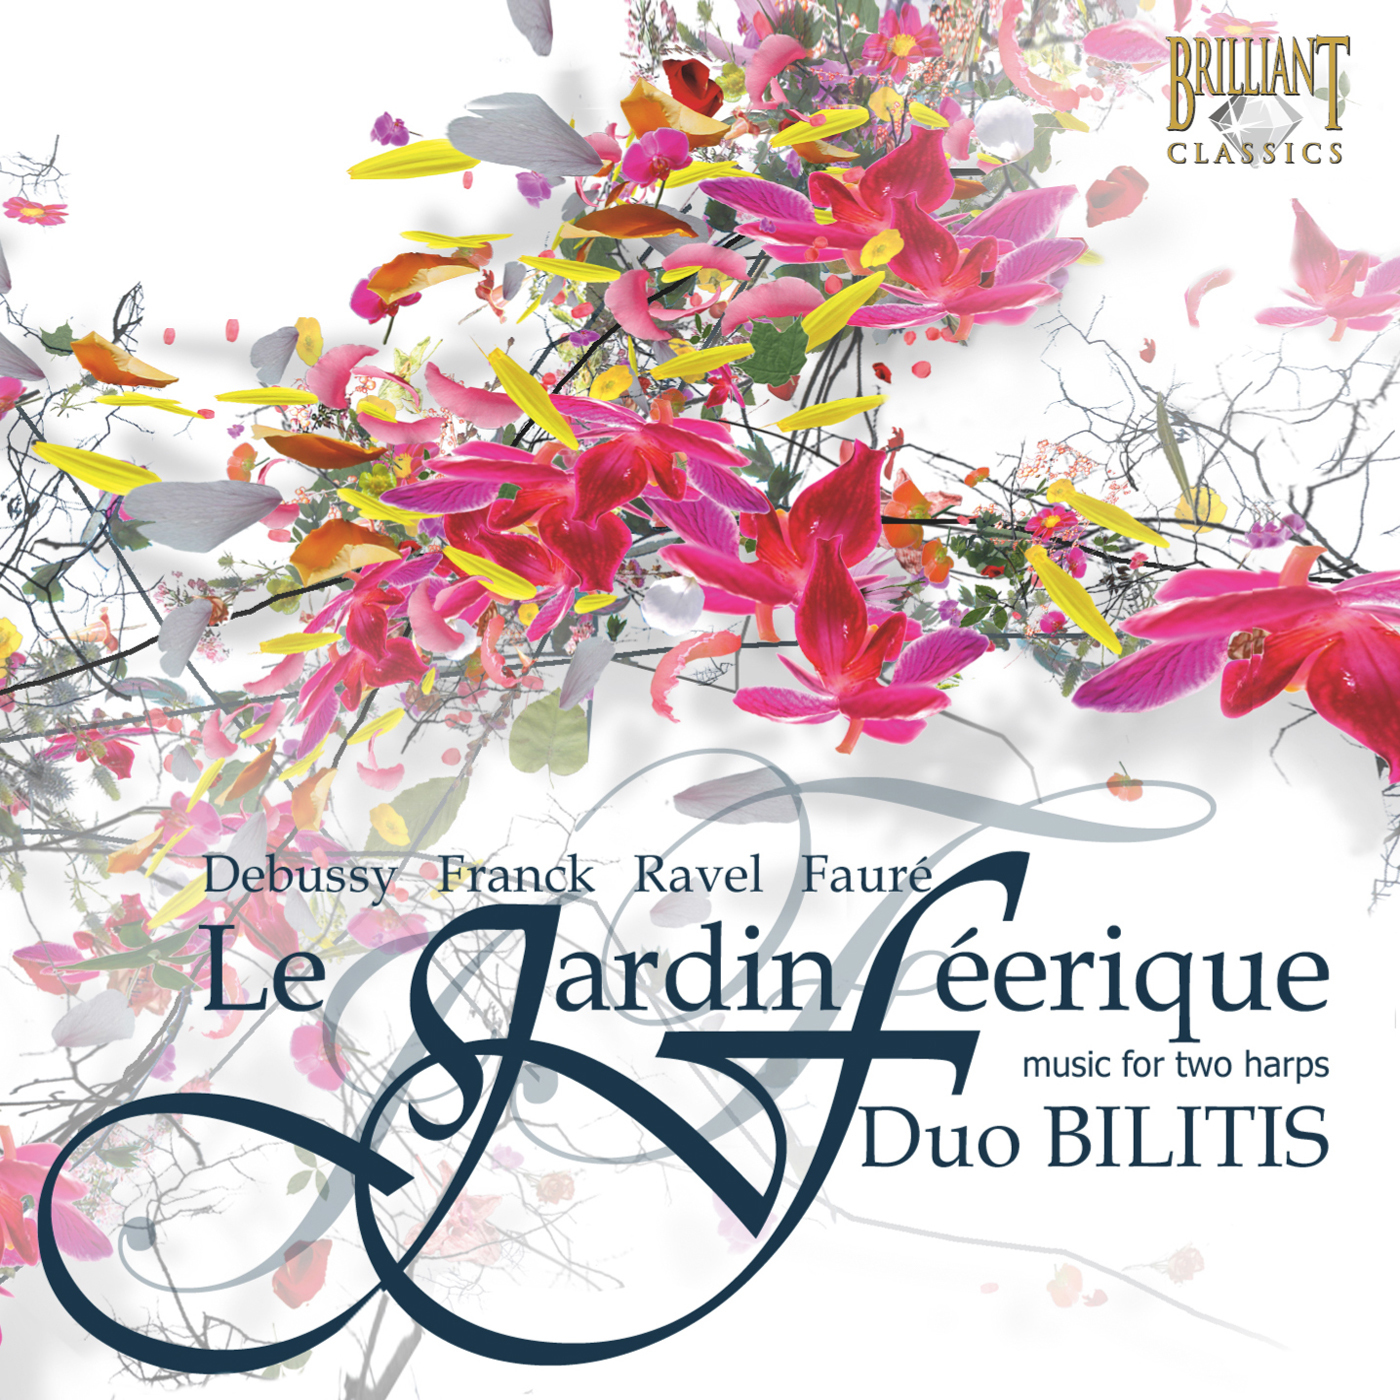 Le jardin feerique: Music for Two Harps